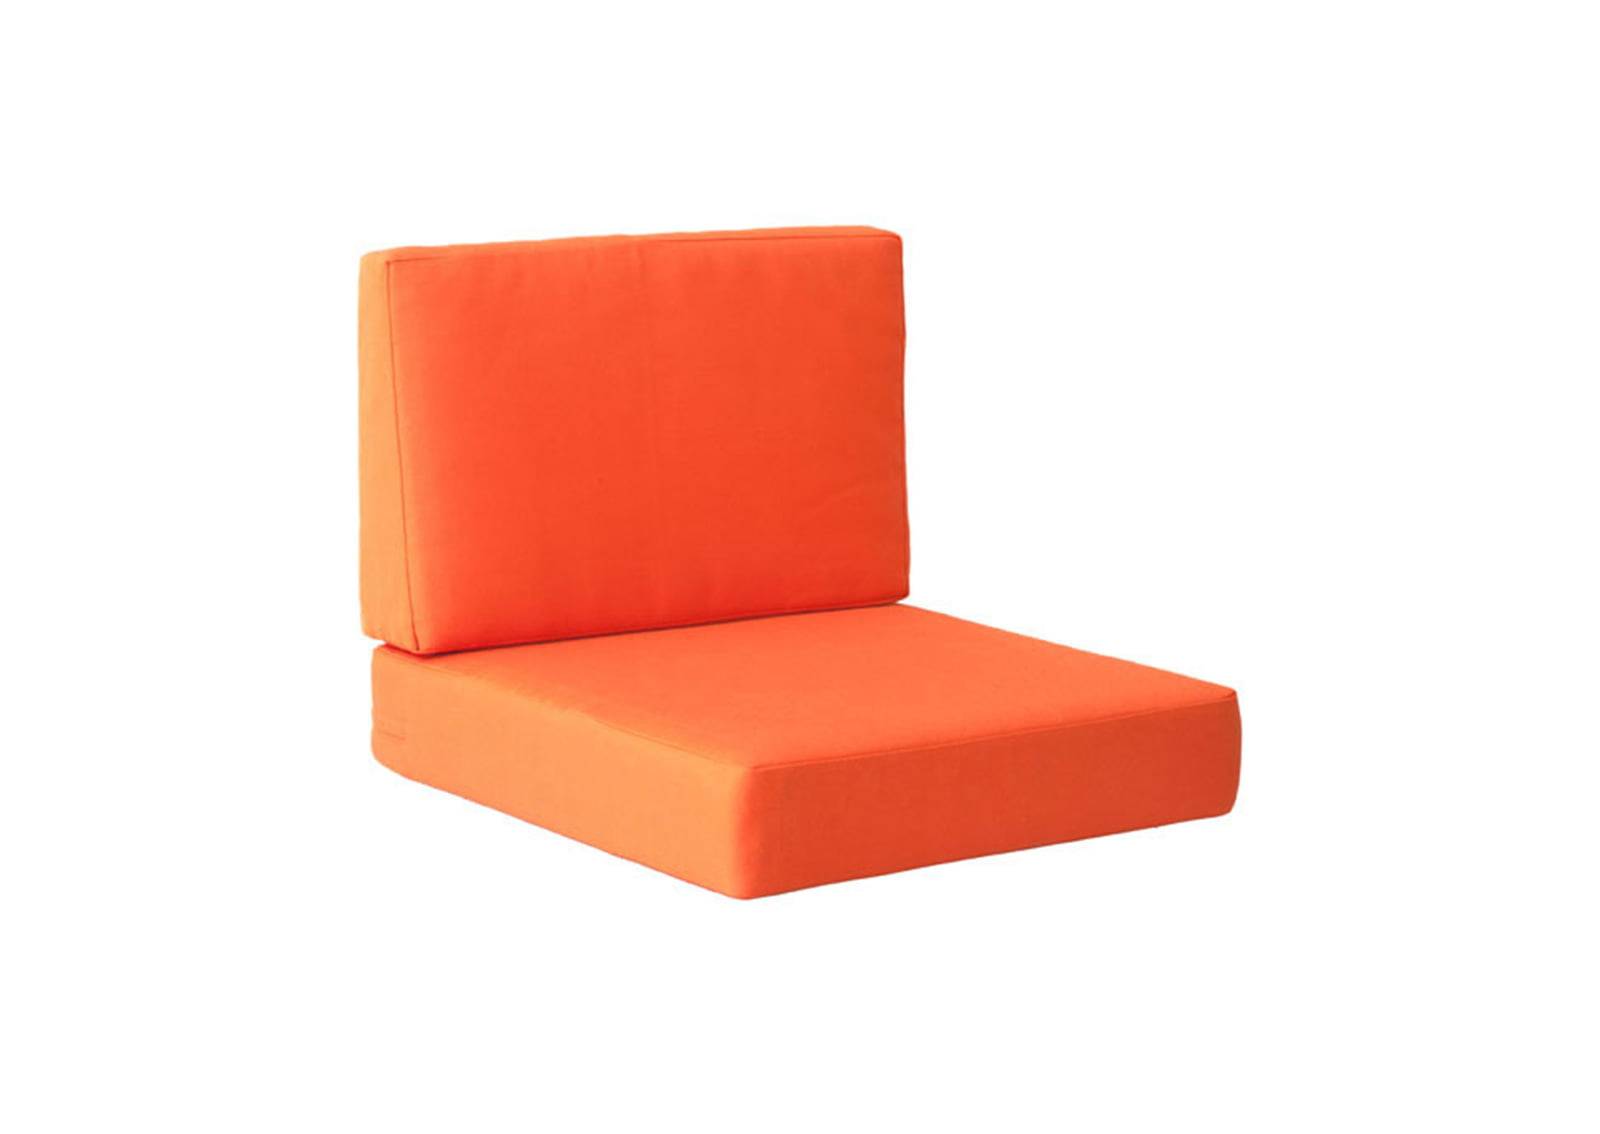 chair back cushions swivel keeps dropping cosmopolitan arm cushion orange | furnishplus